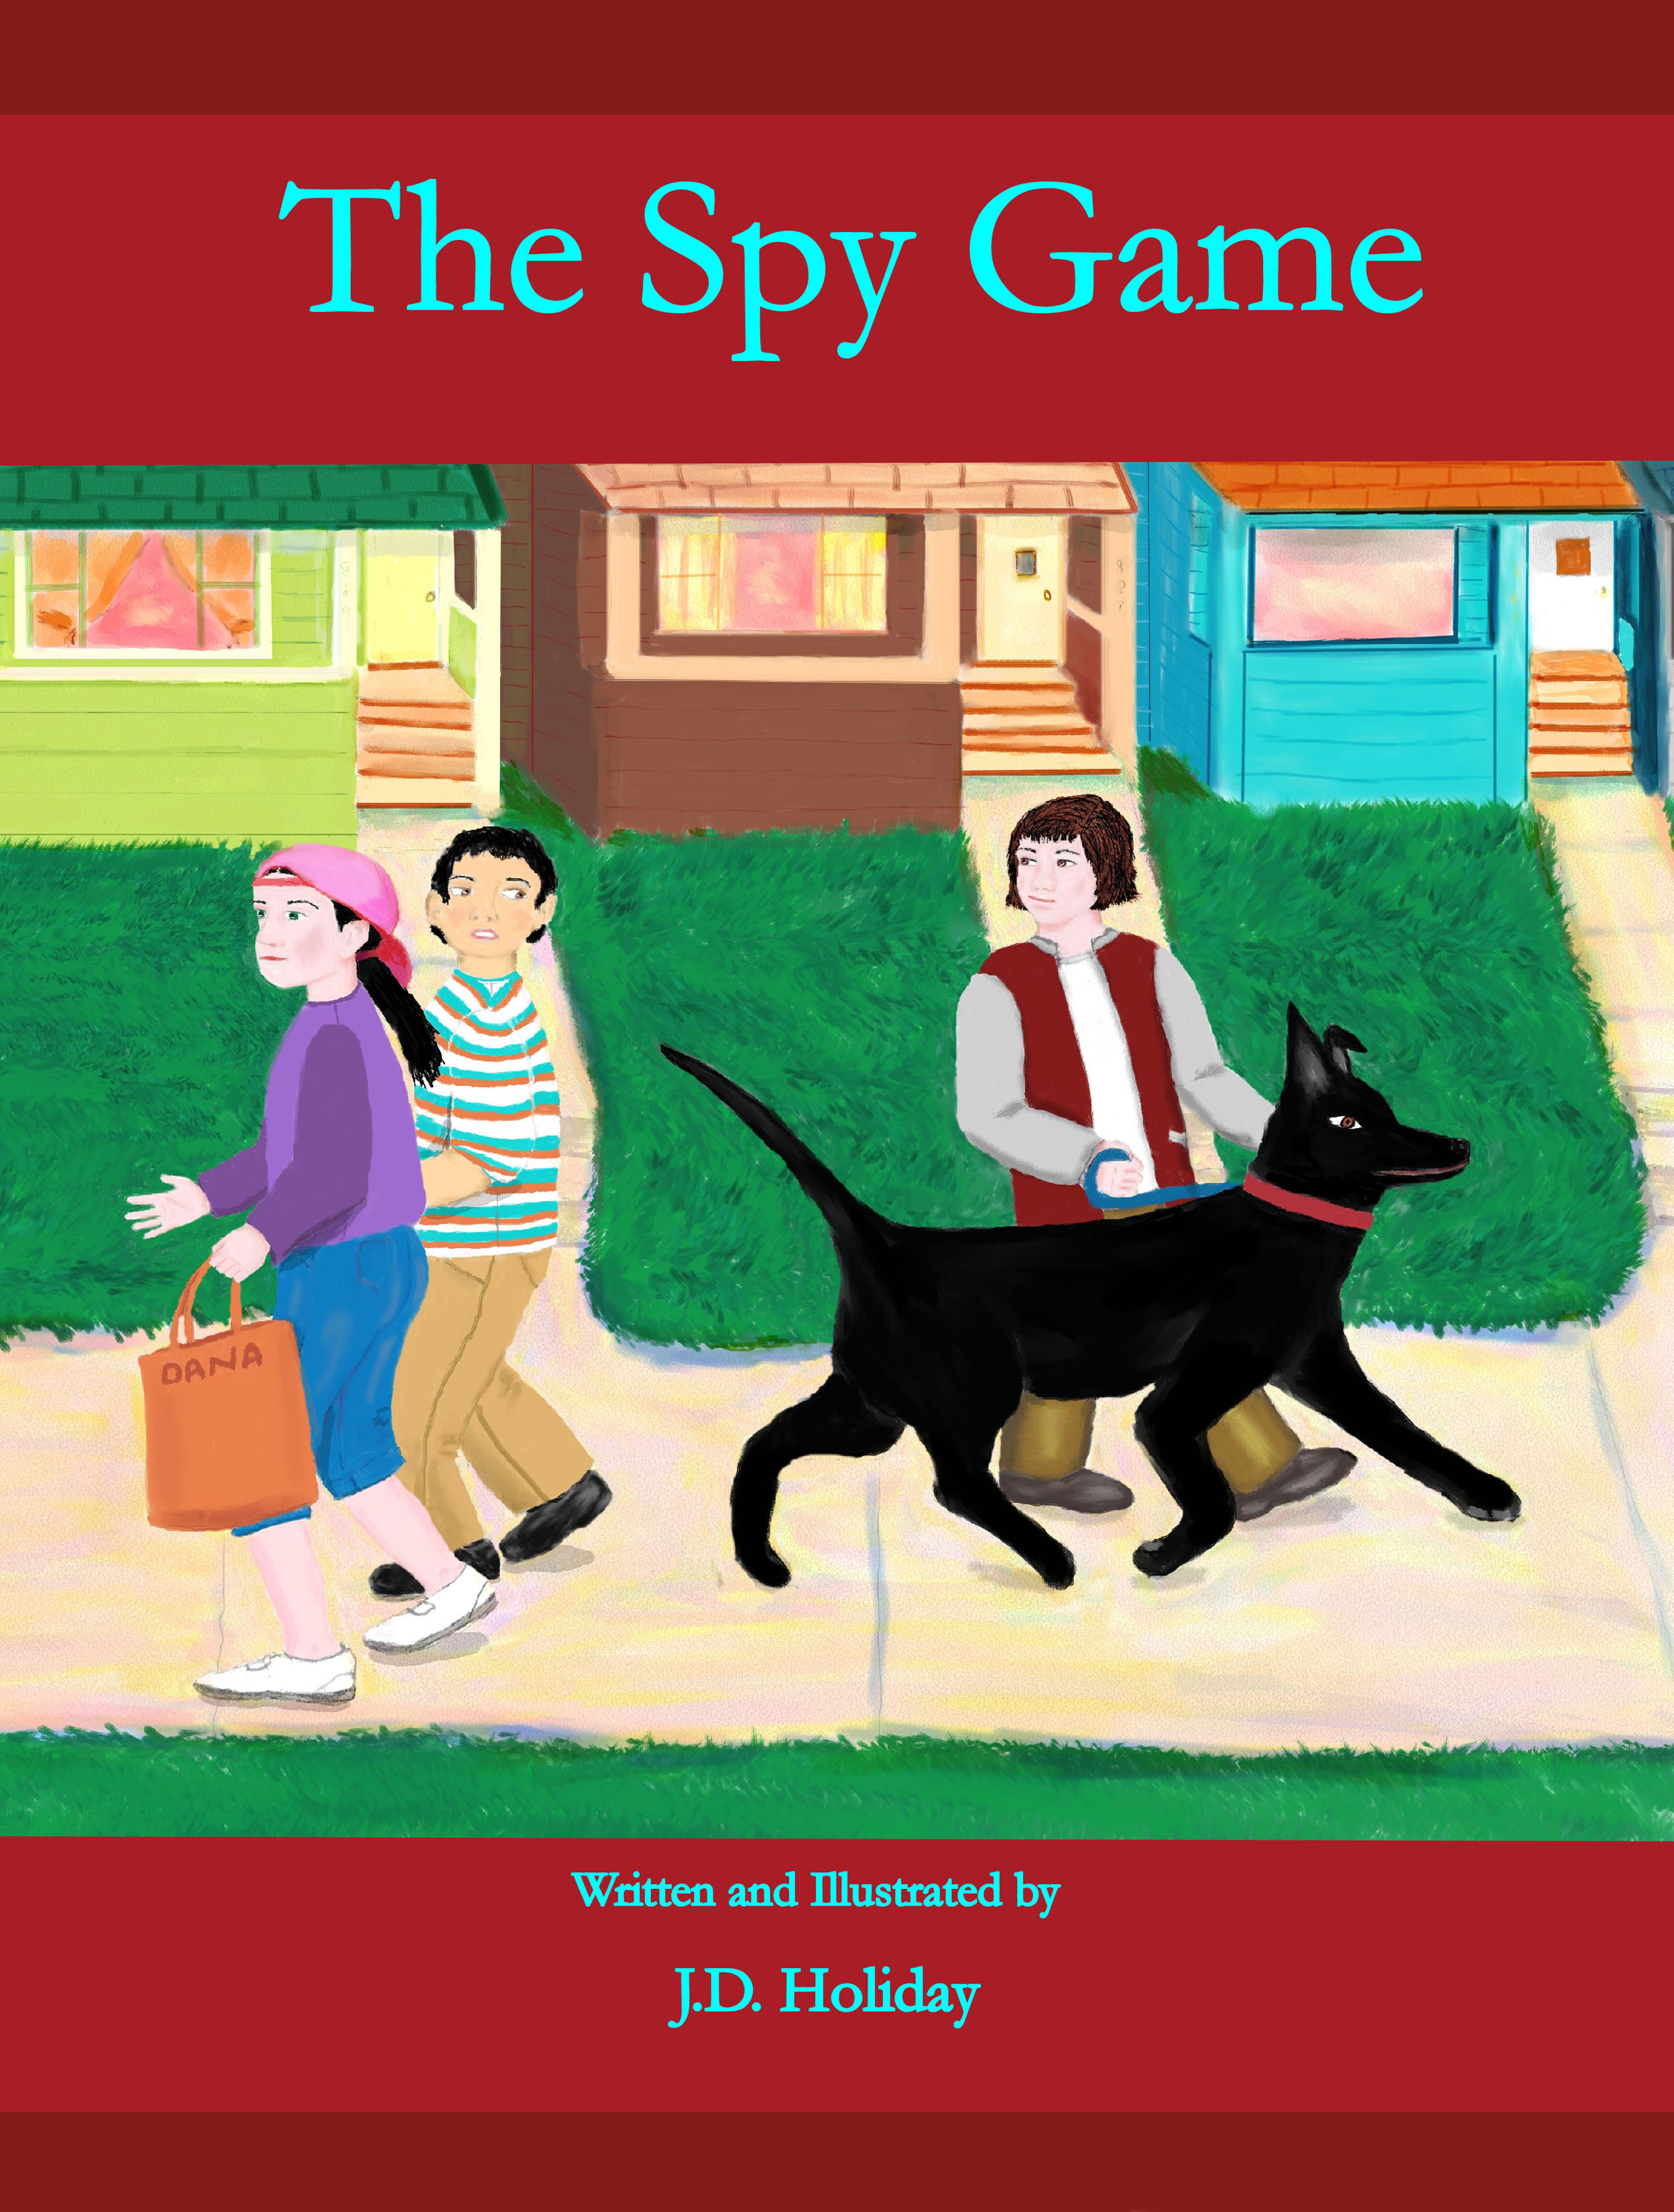 The Spy Game by JD Holiday Book Review and #Giveaway